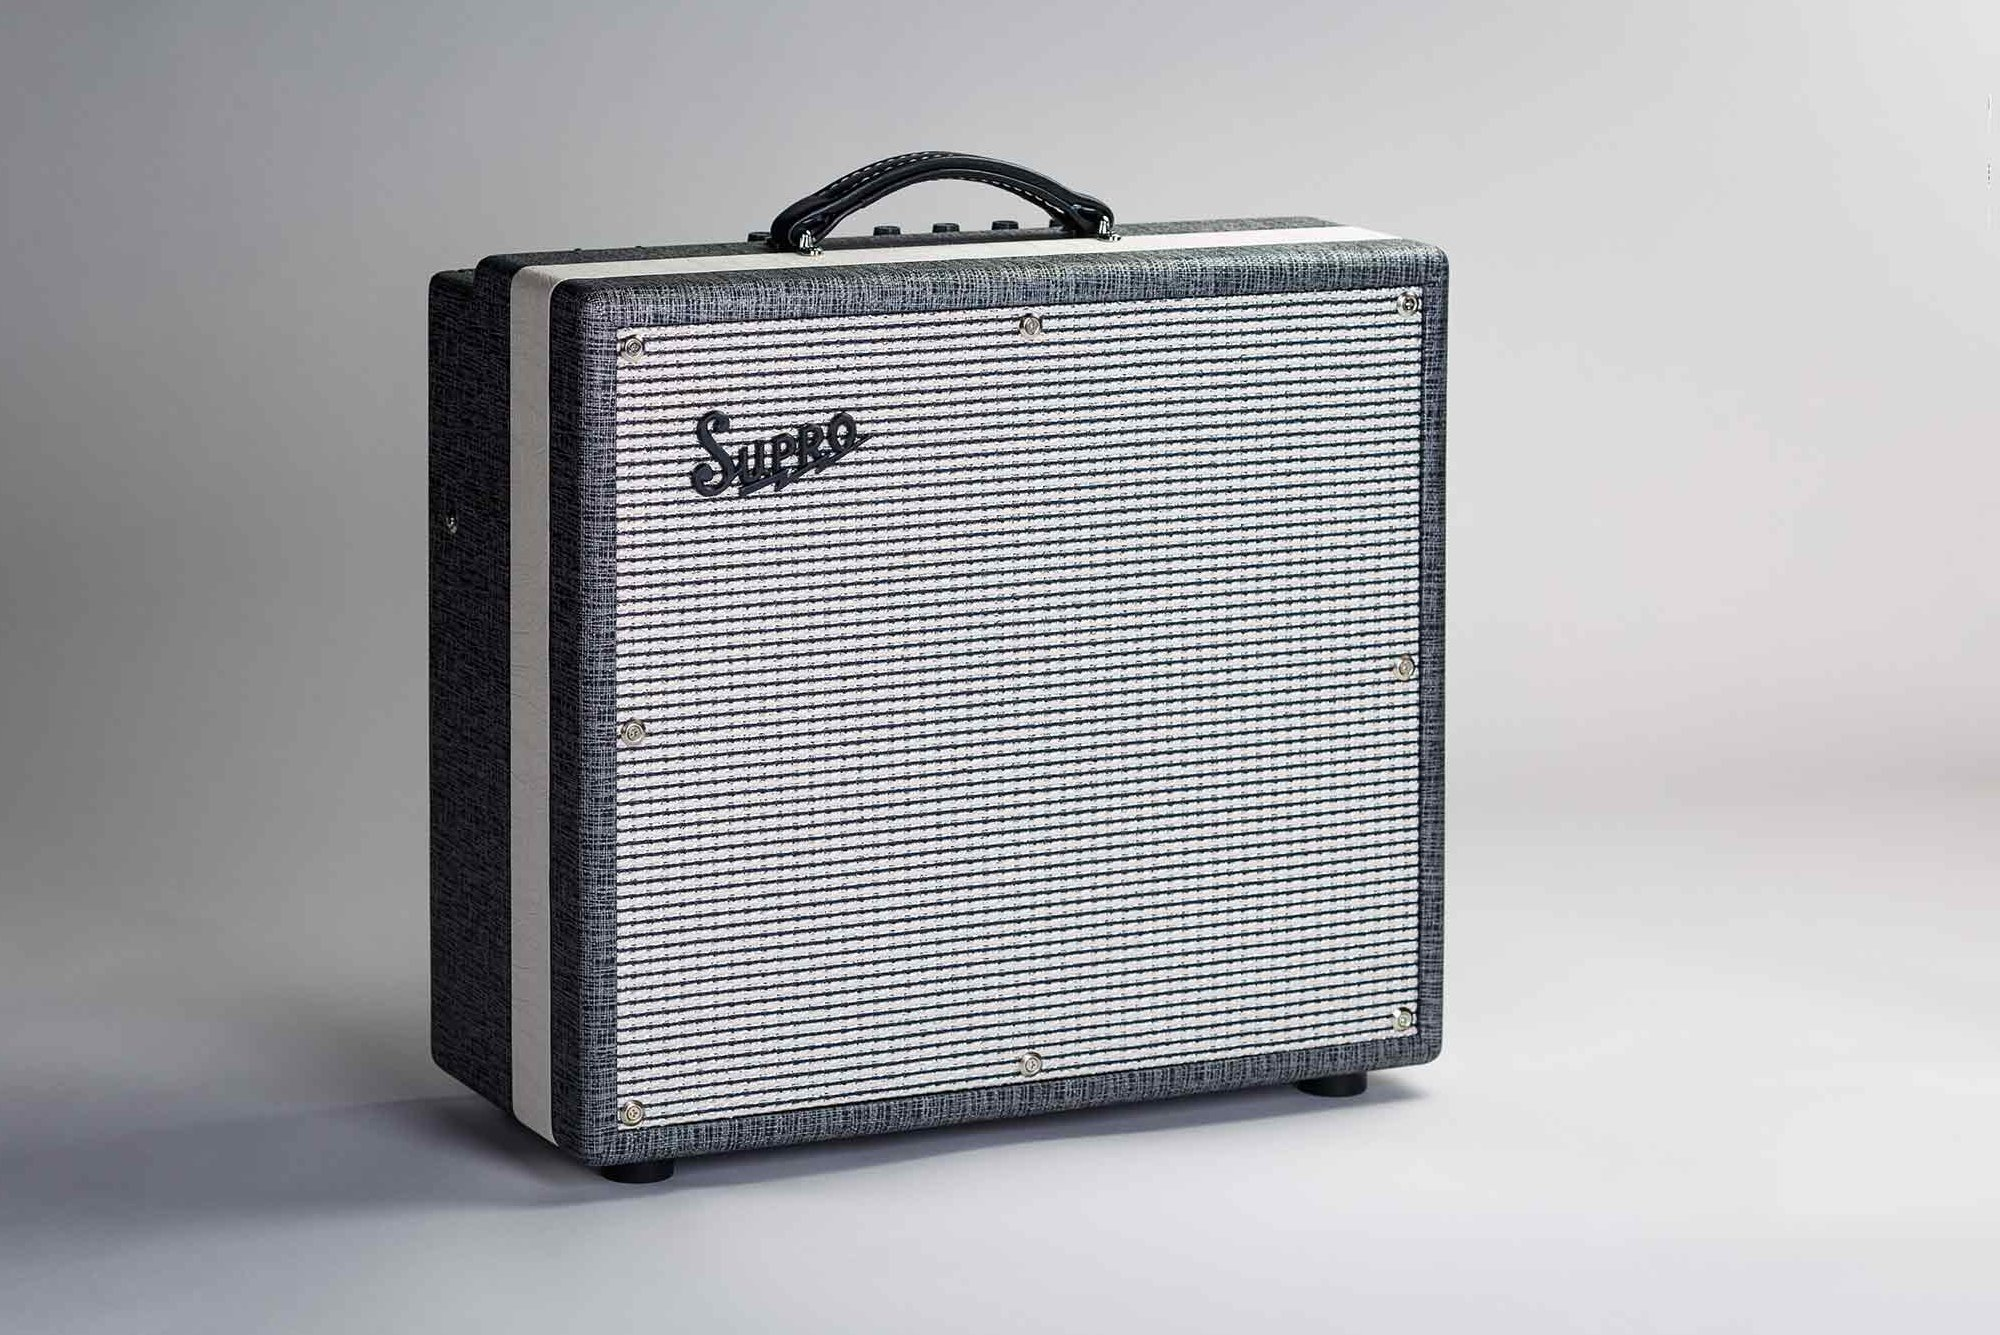 Supro Black Magic 1695T